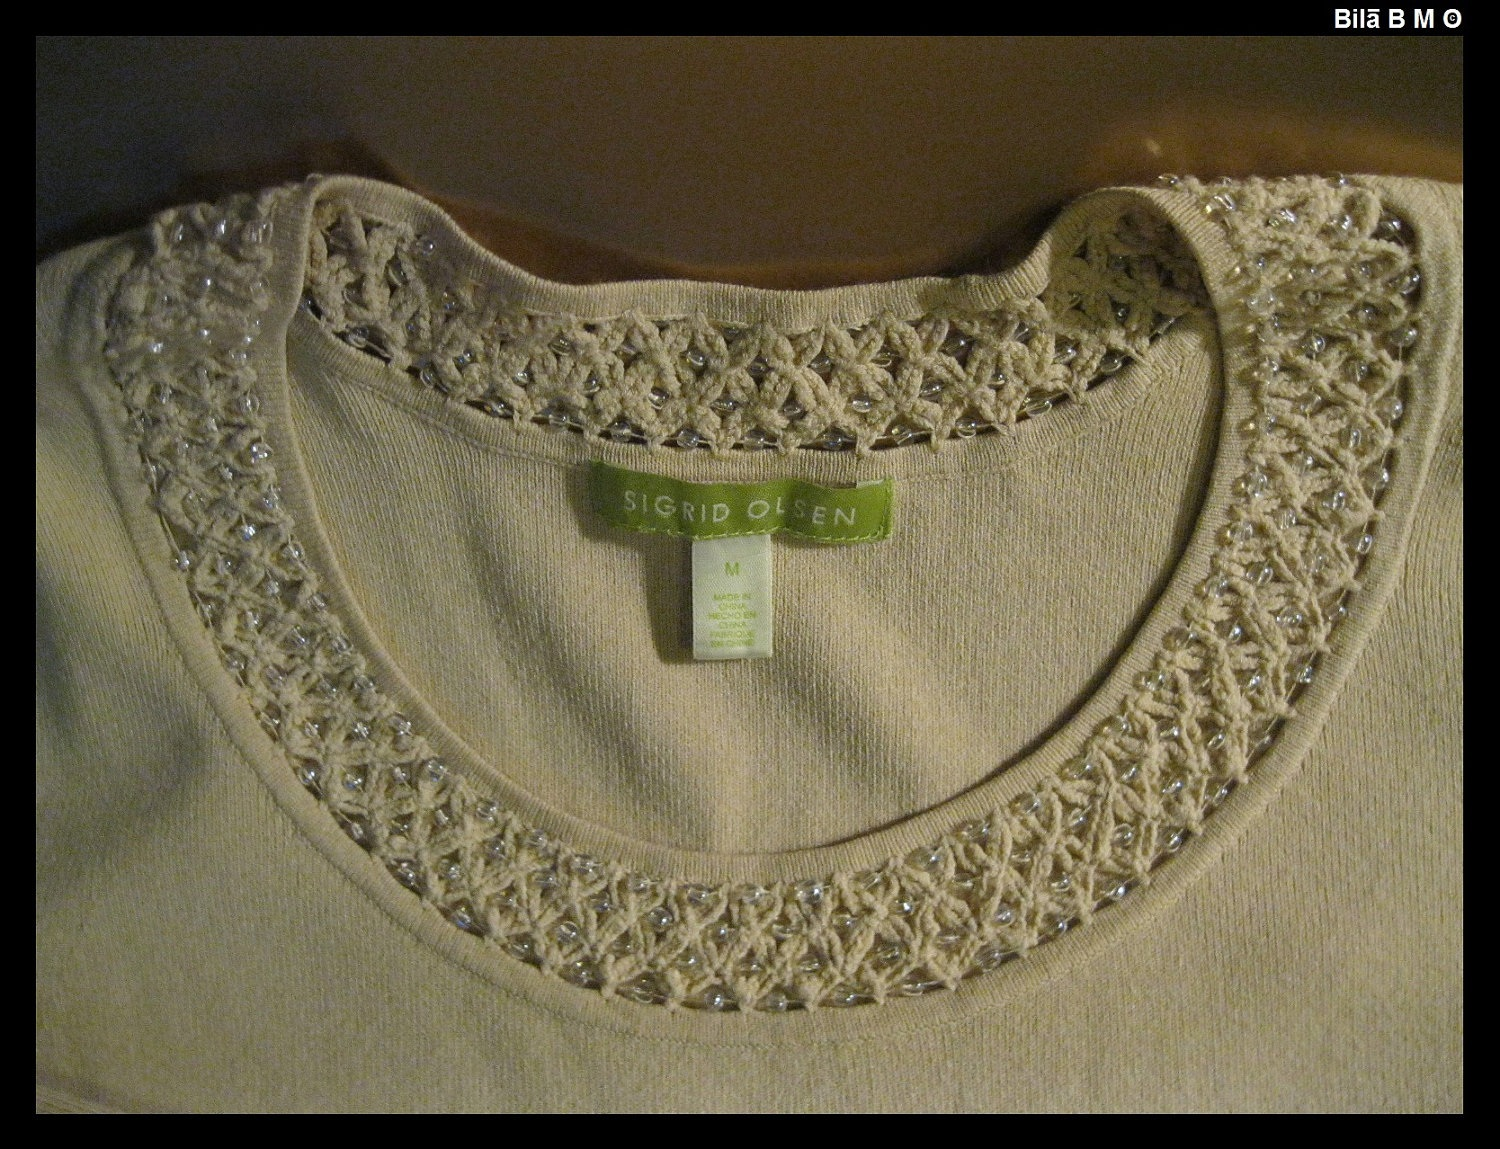 SIGRID OLSEN Knit Top with Beaded Neckline - Size Medium - FREE SHIPPING image 4